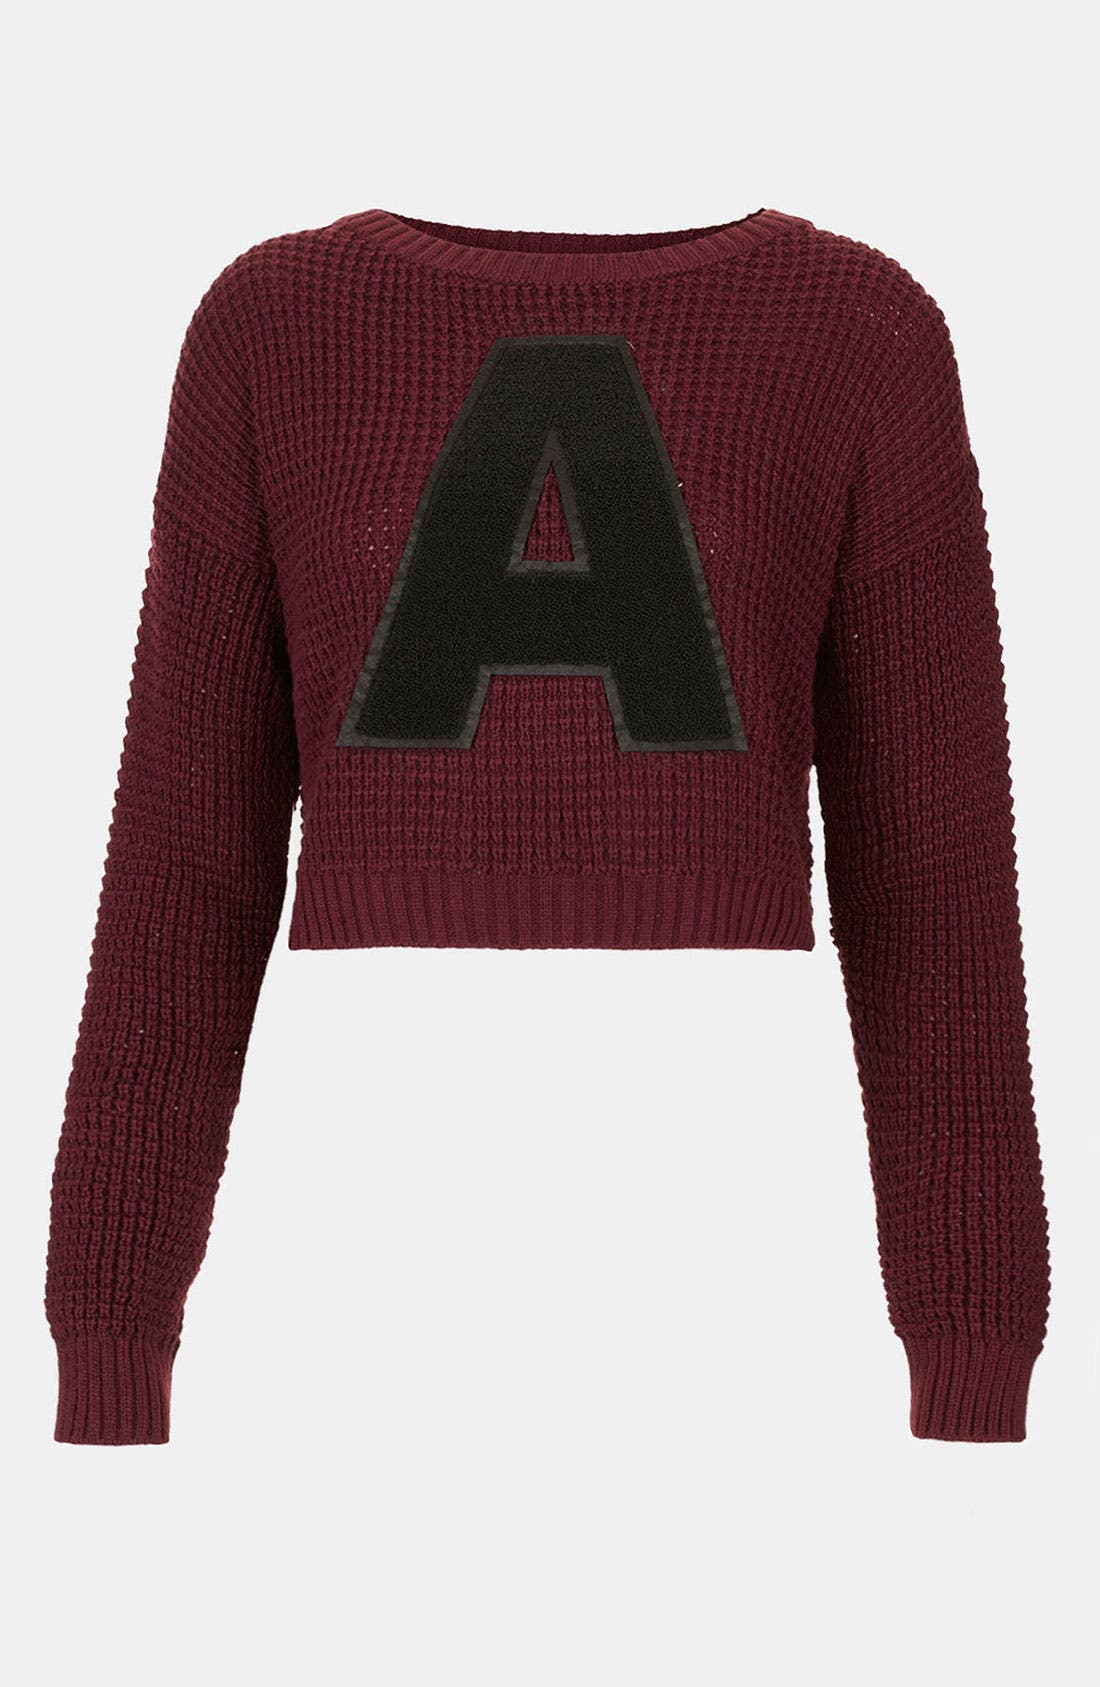 Main Image - Topshop 'A' Crop Letter Sweater